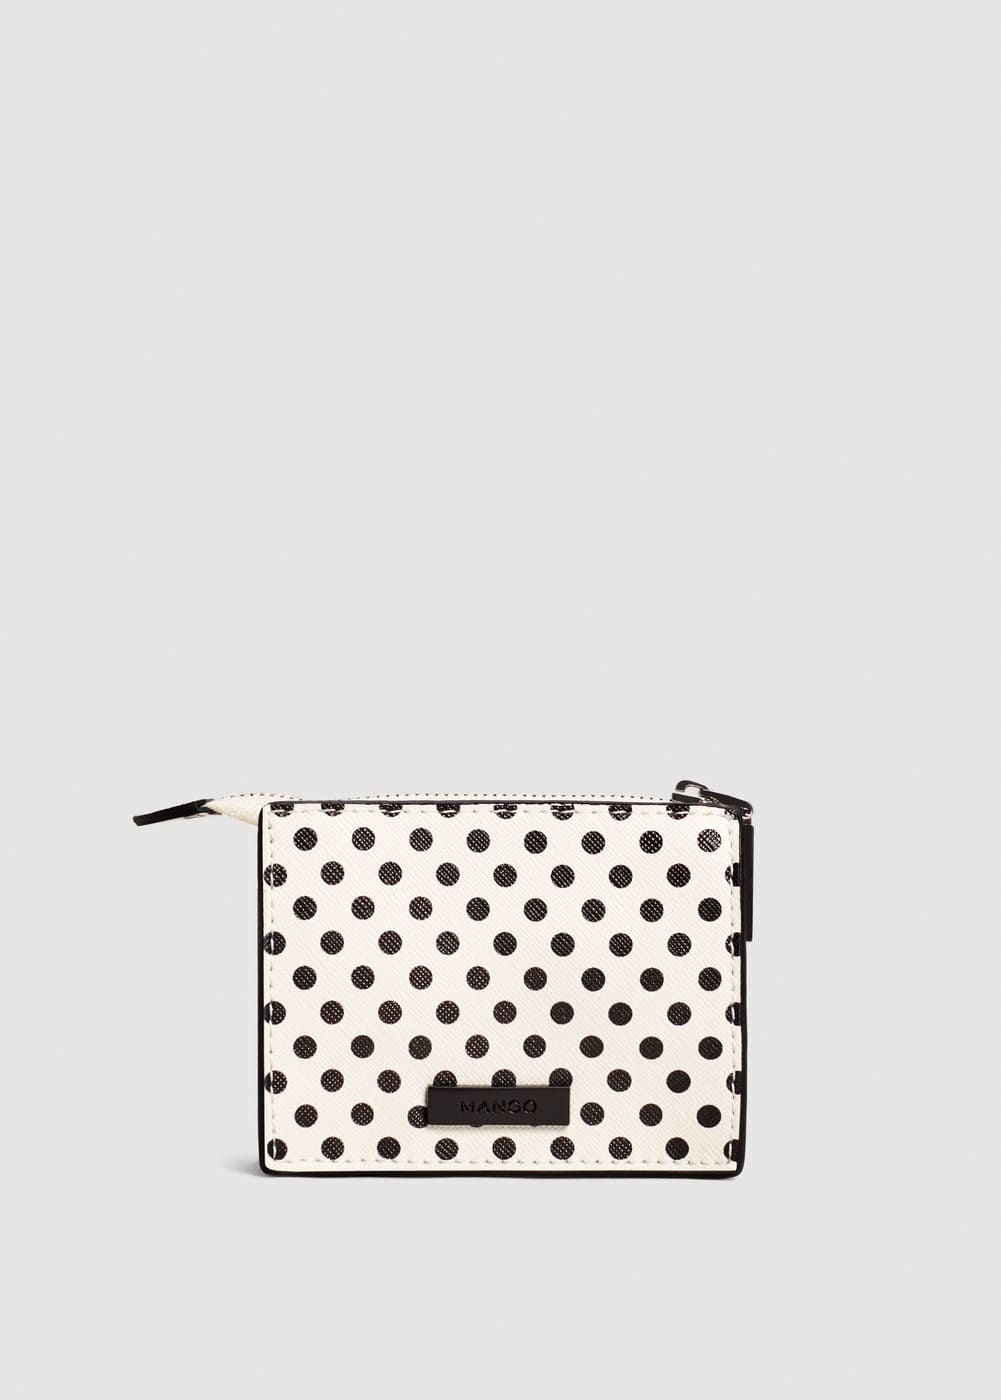 Print Wallet by Mango